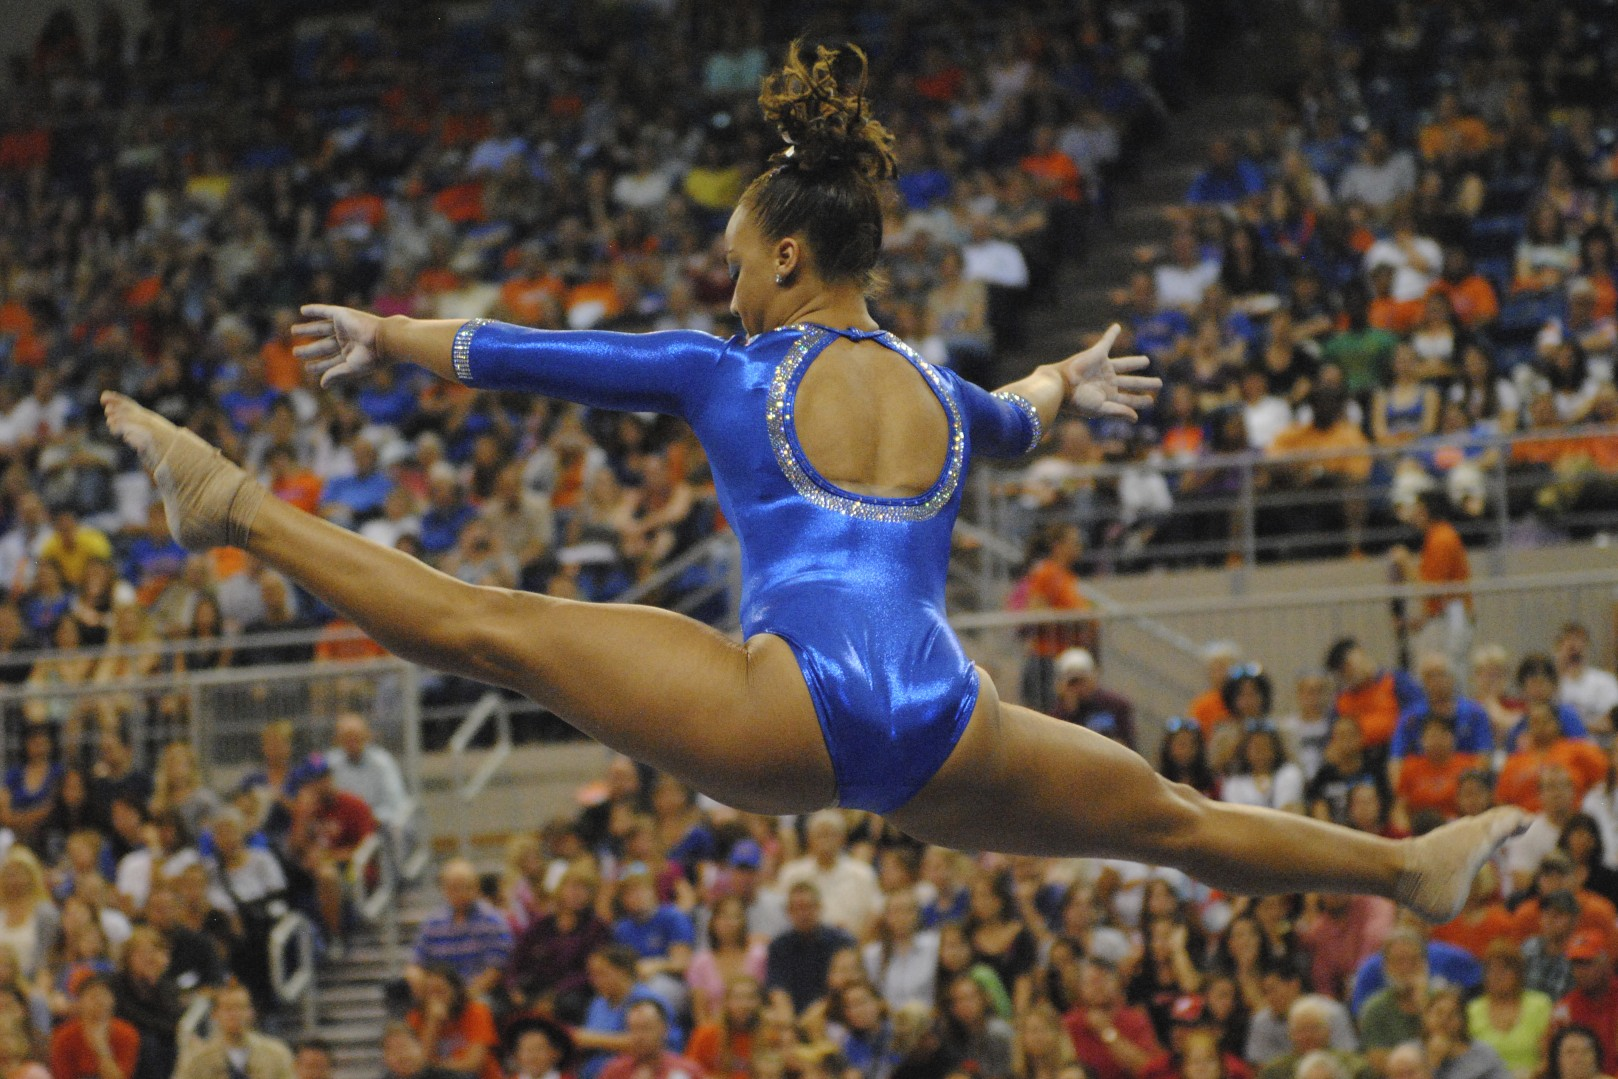 Freshman Kytra Hunter took home the score of 9.925 on beam friday night.